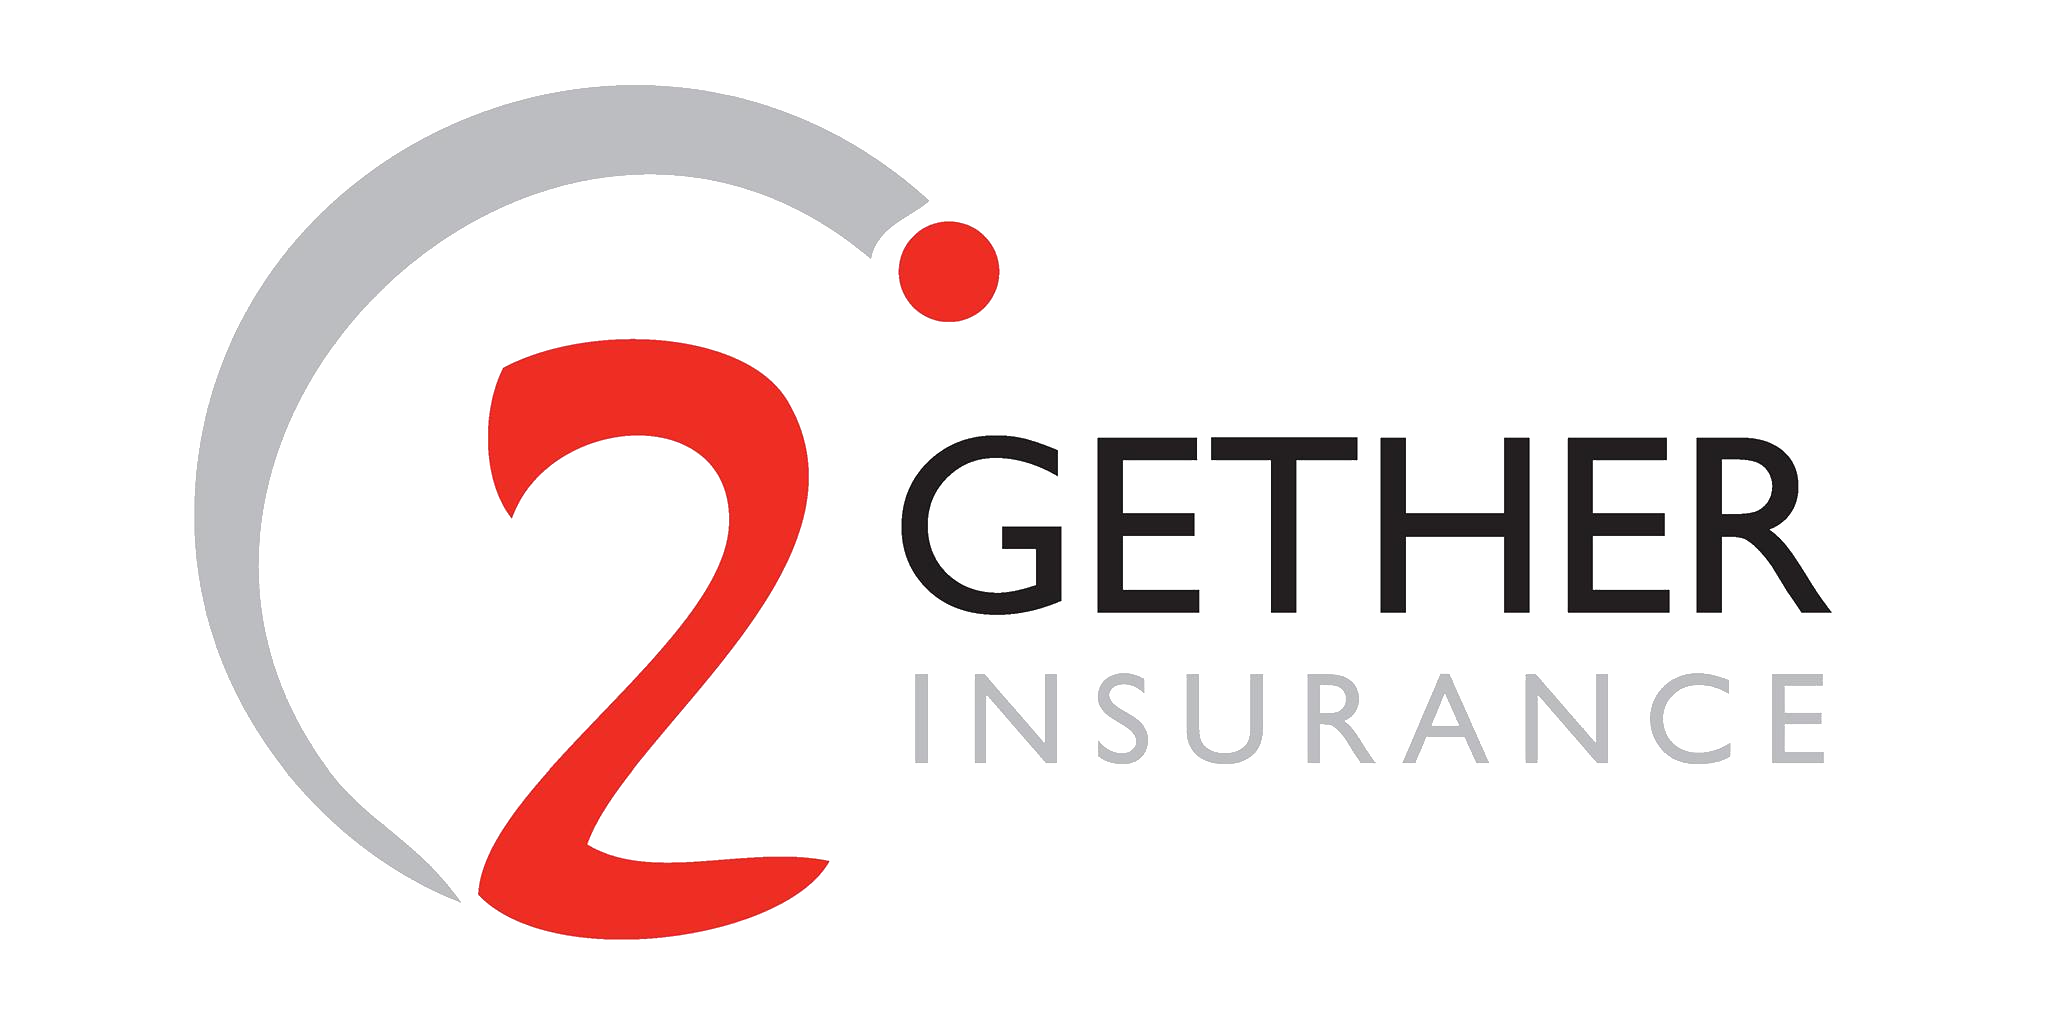 2Gether Insurance Ltd